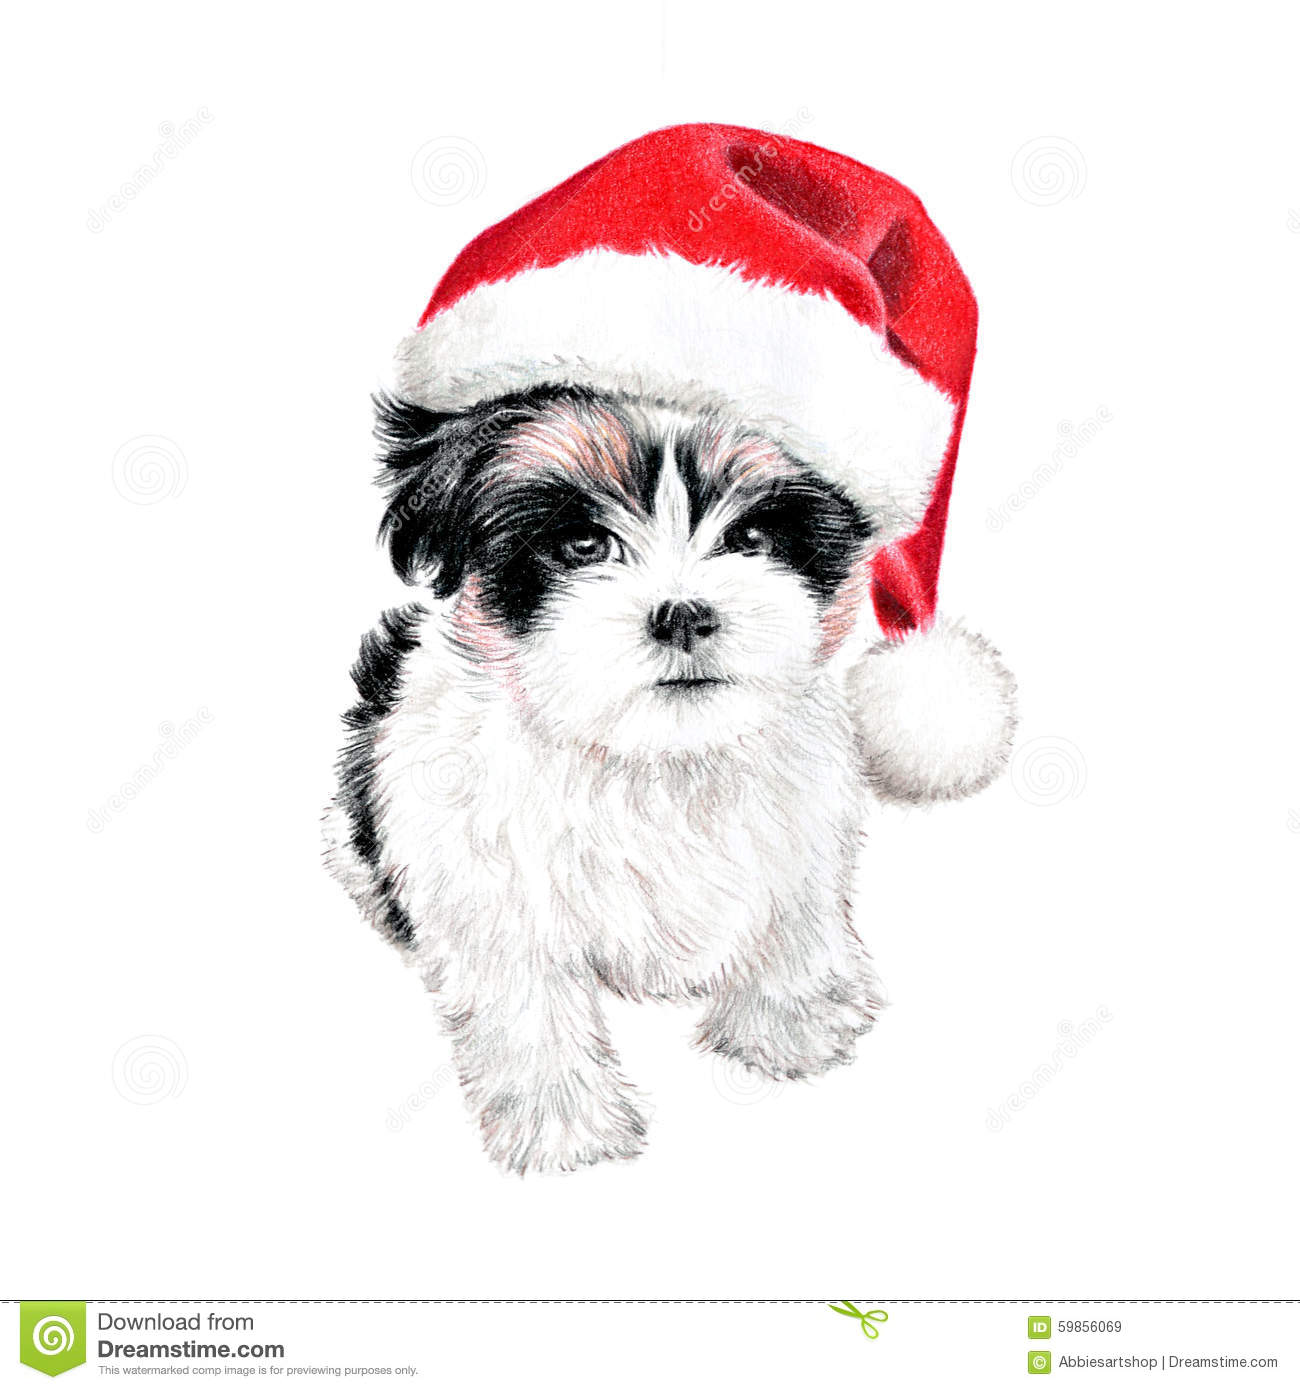 Cute Christmas Puppy Dog With Santa Hat Illustration Hand Drawn Colored Pencil Art Stock Image Image Of Black Hand 59856069